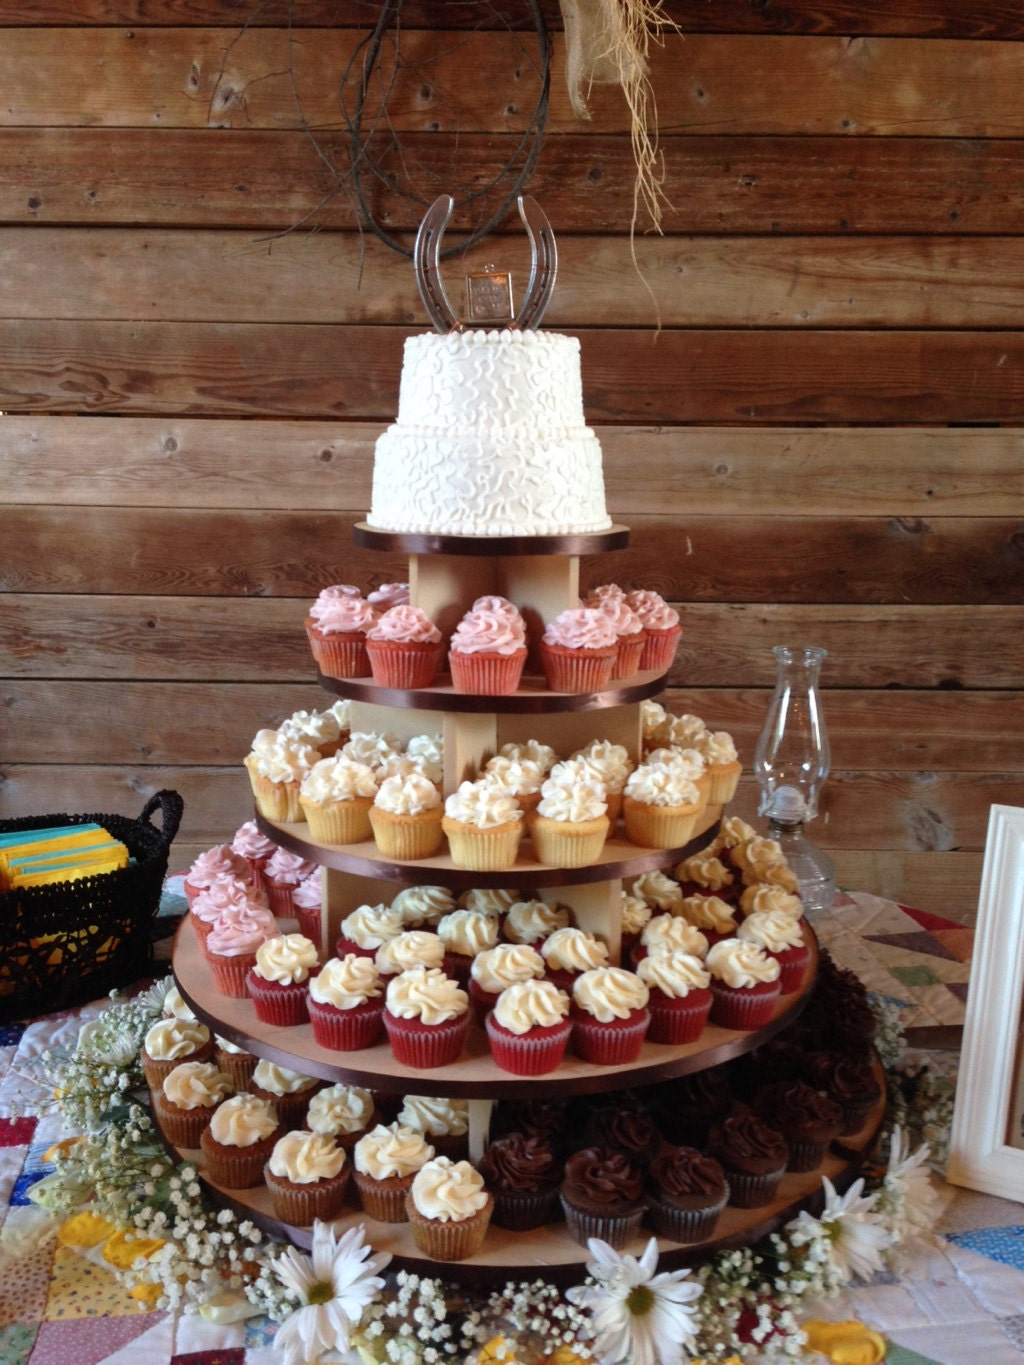 rustic wedding cake display ideas 5 tier xtra large cupcake stand 150 cupcakes threaded 19530